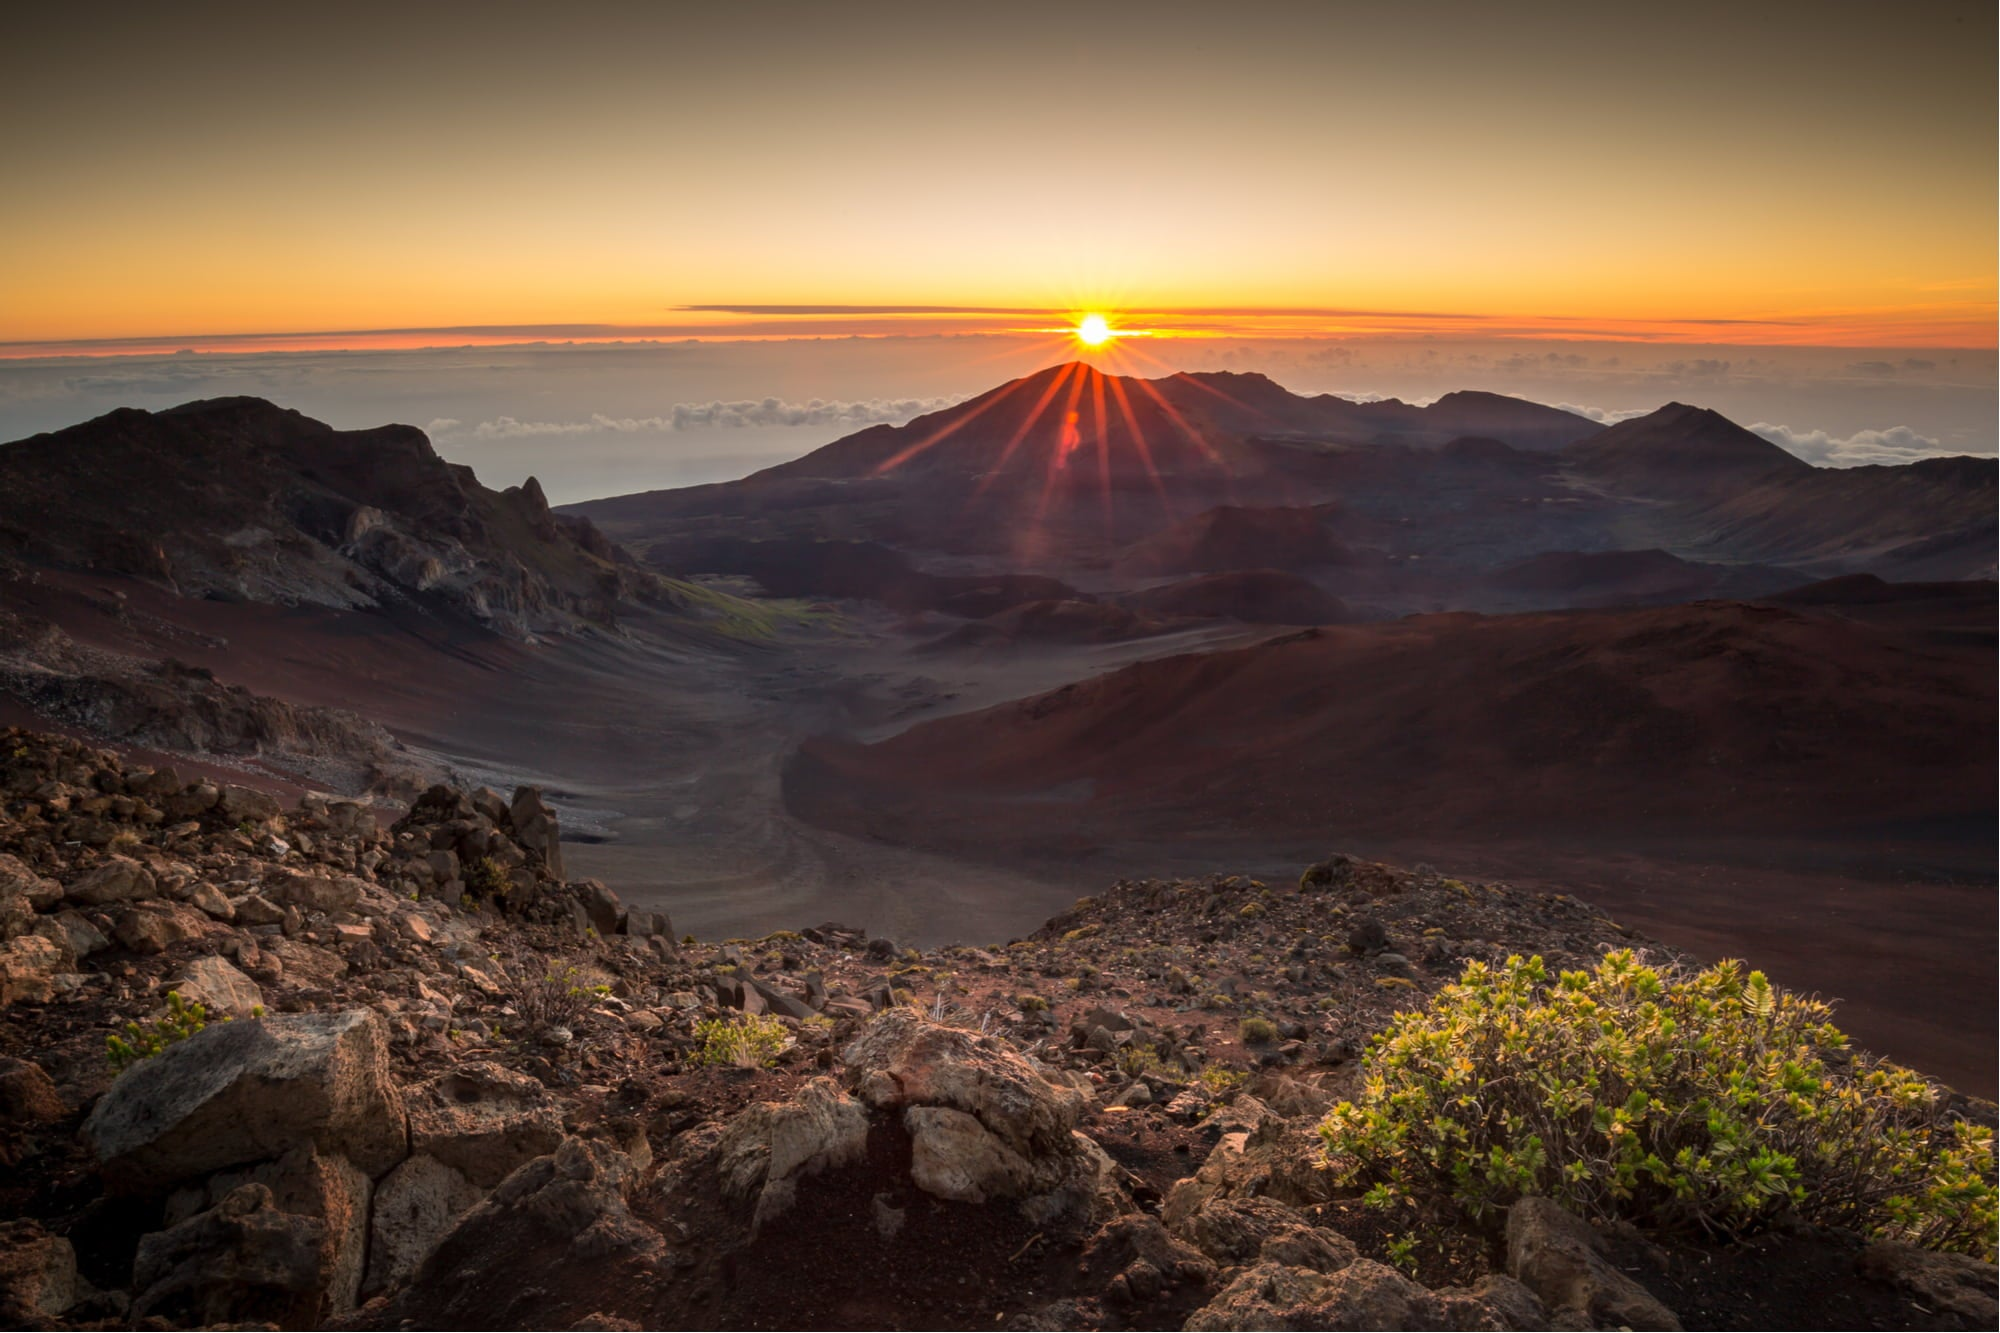 a sunset in haleakala national park lowering over a mountain